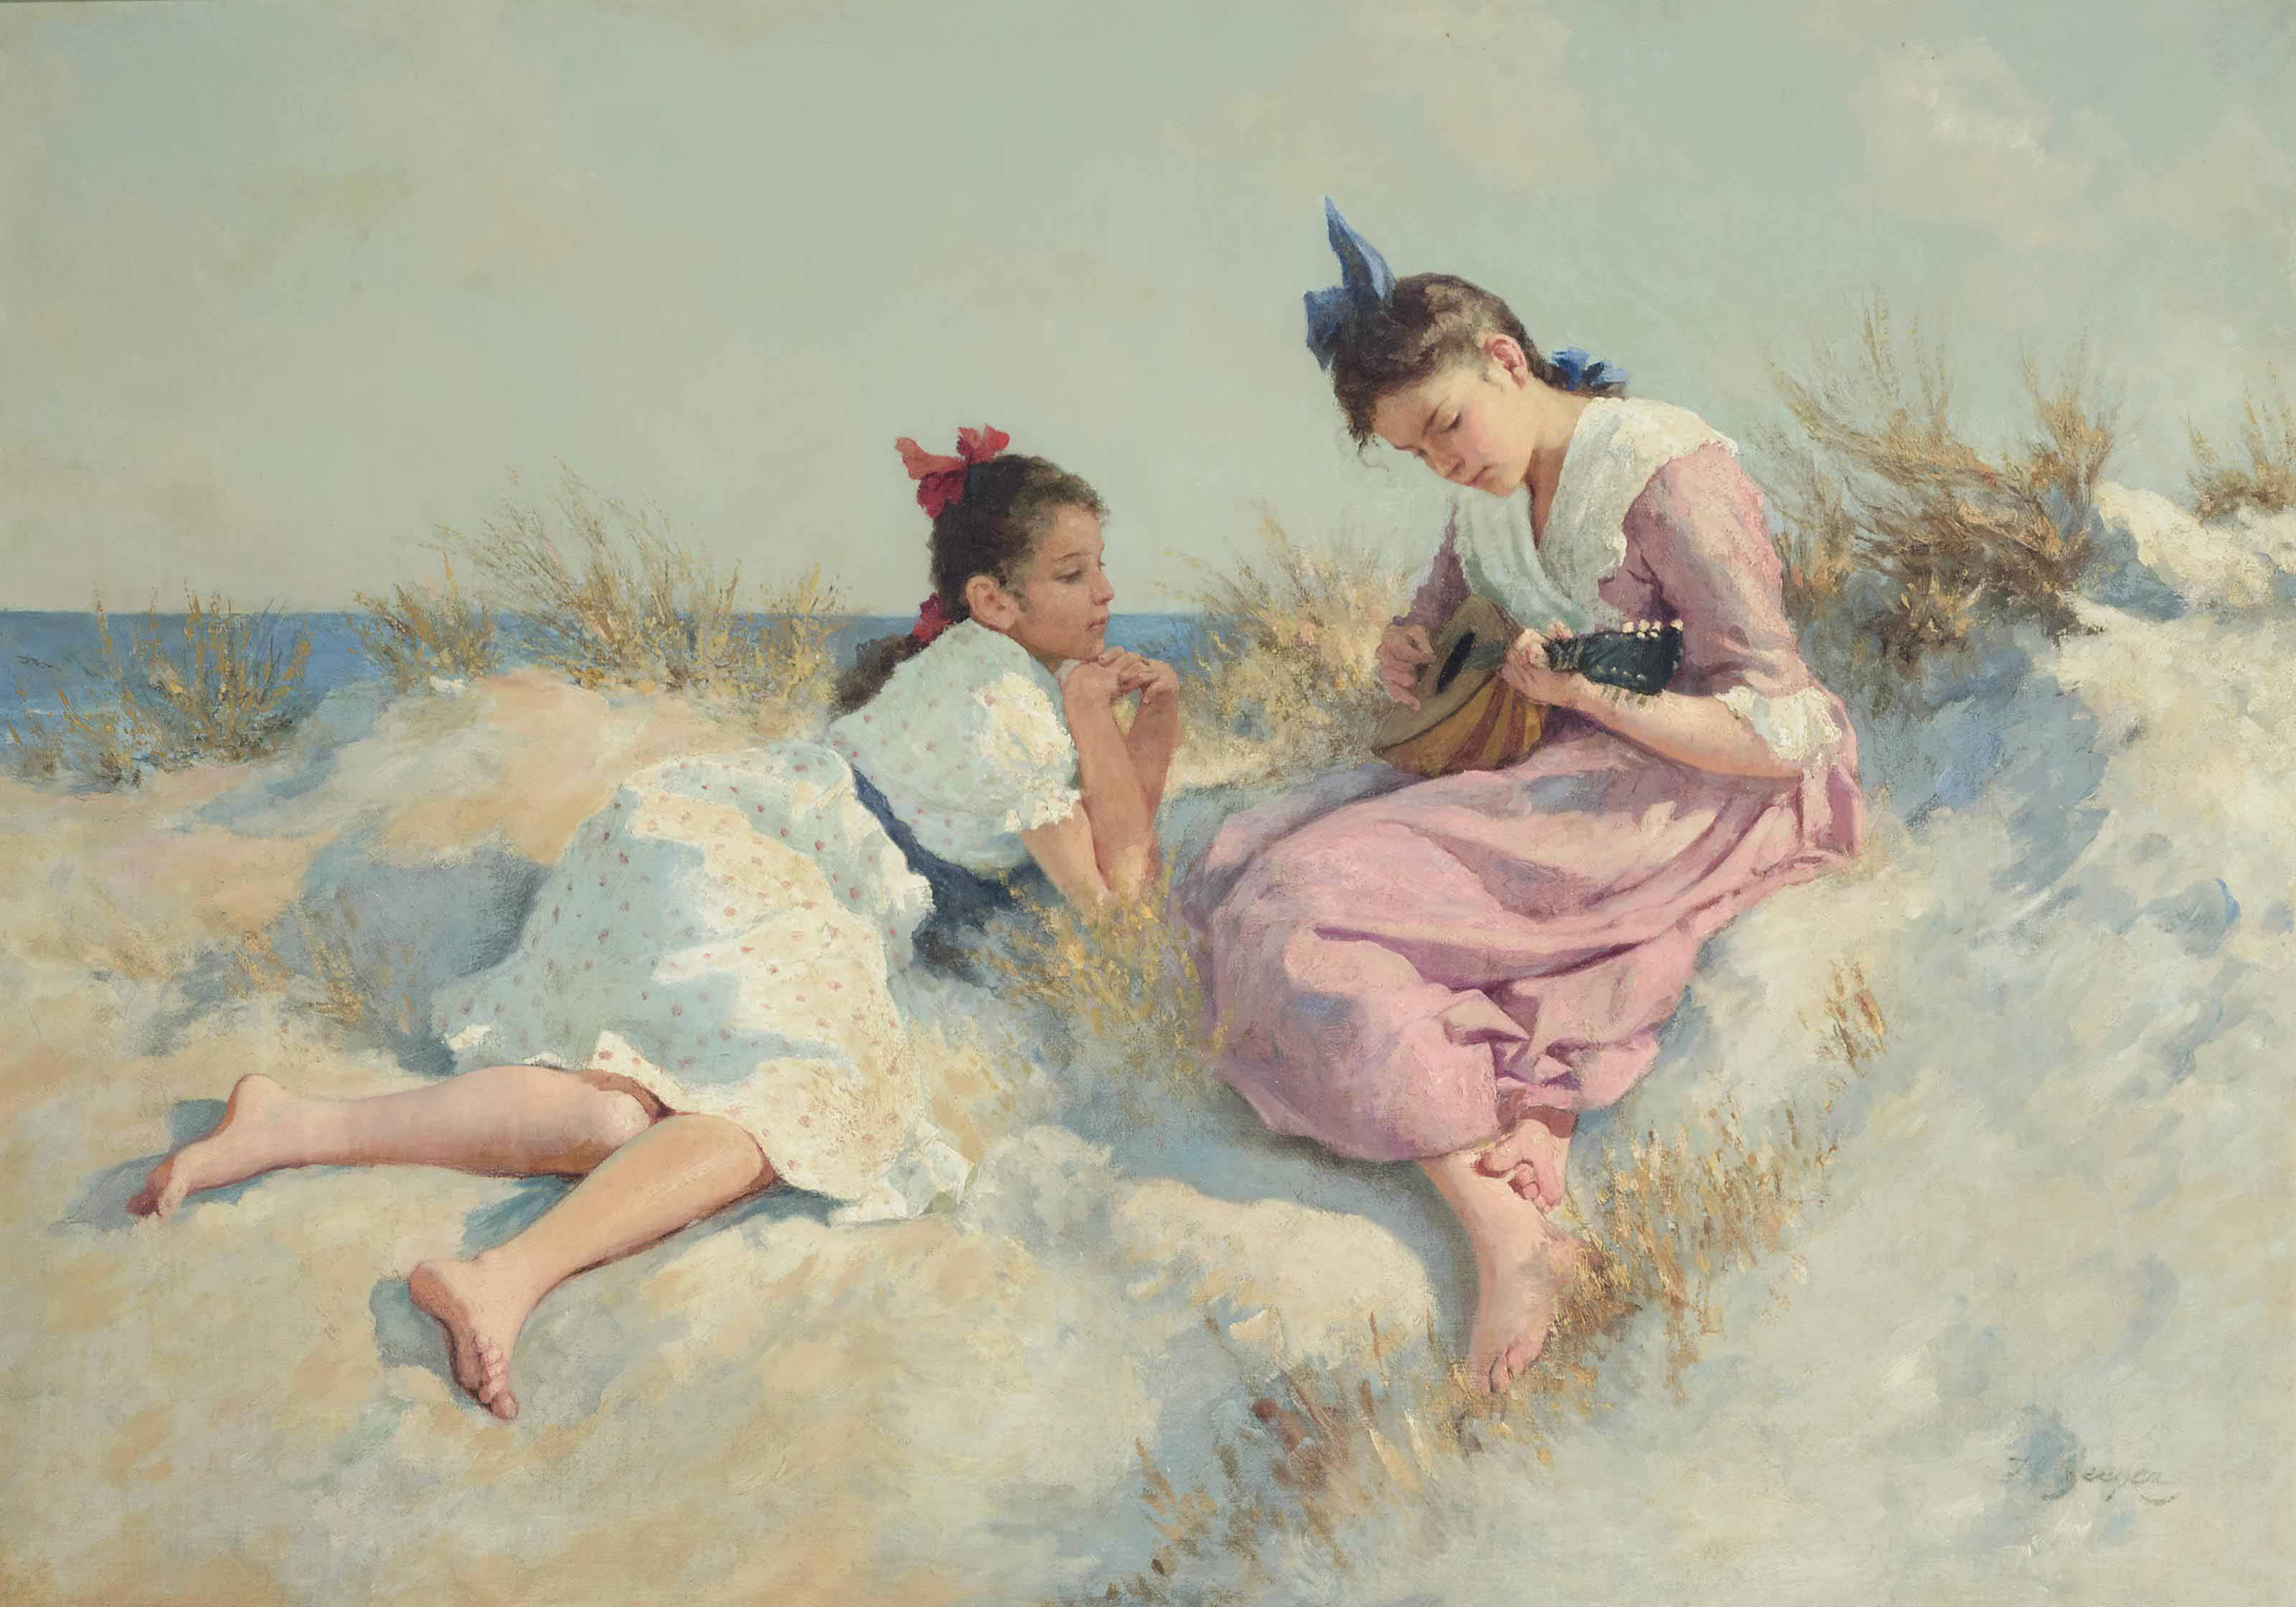 Music in the dunes